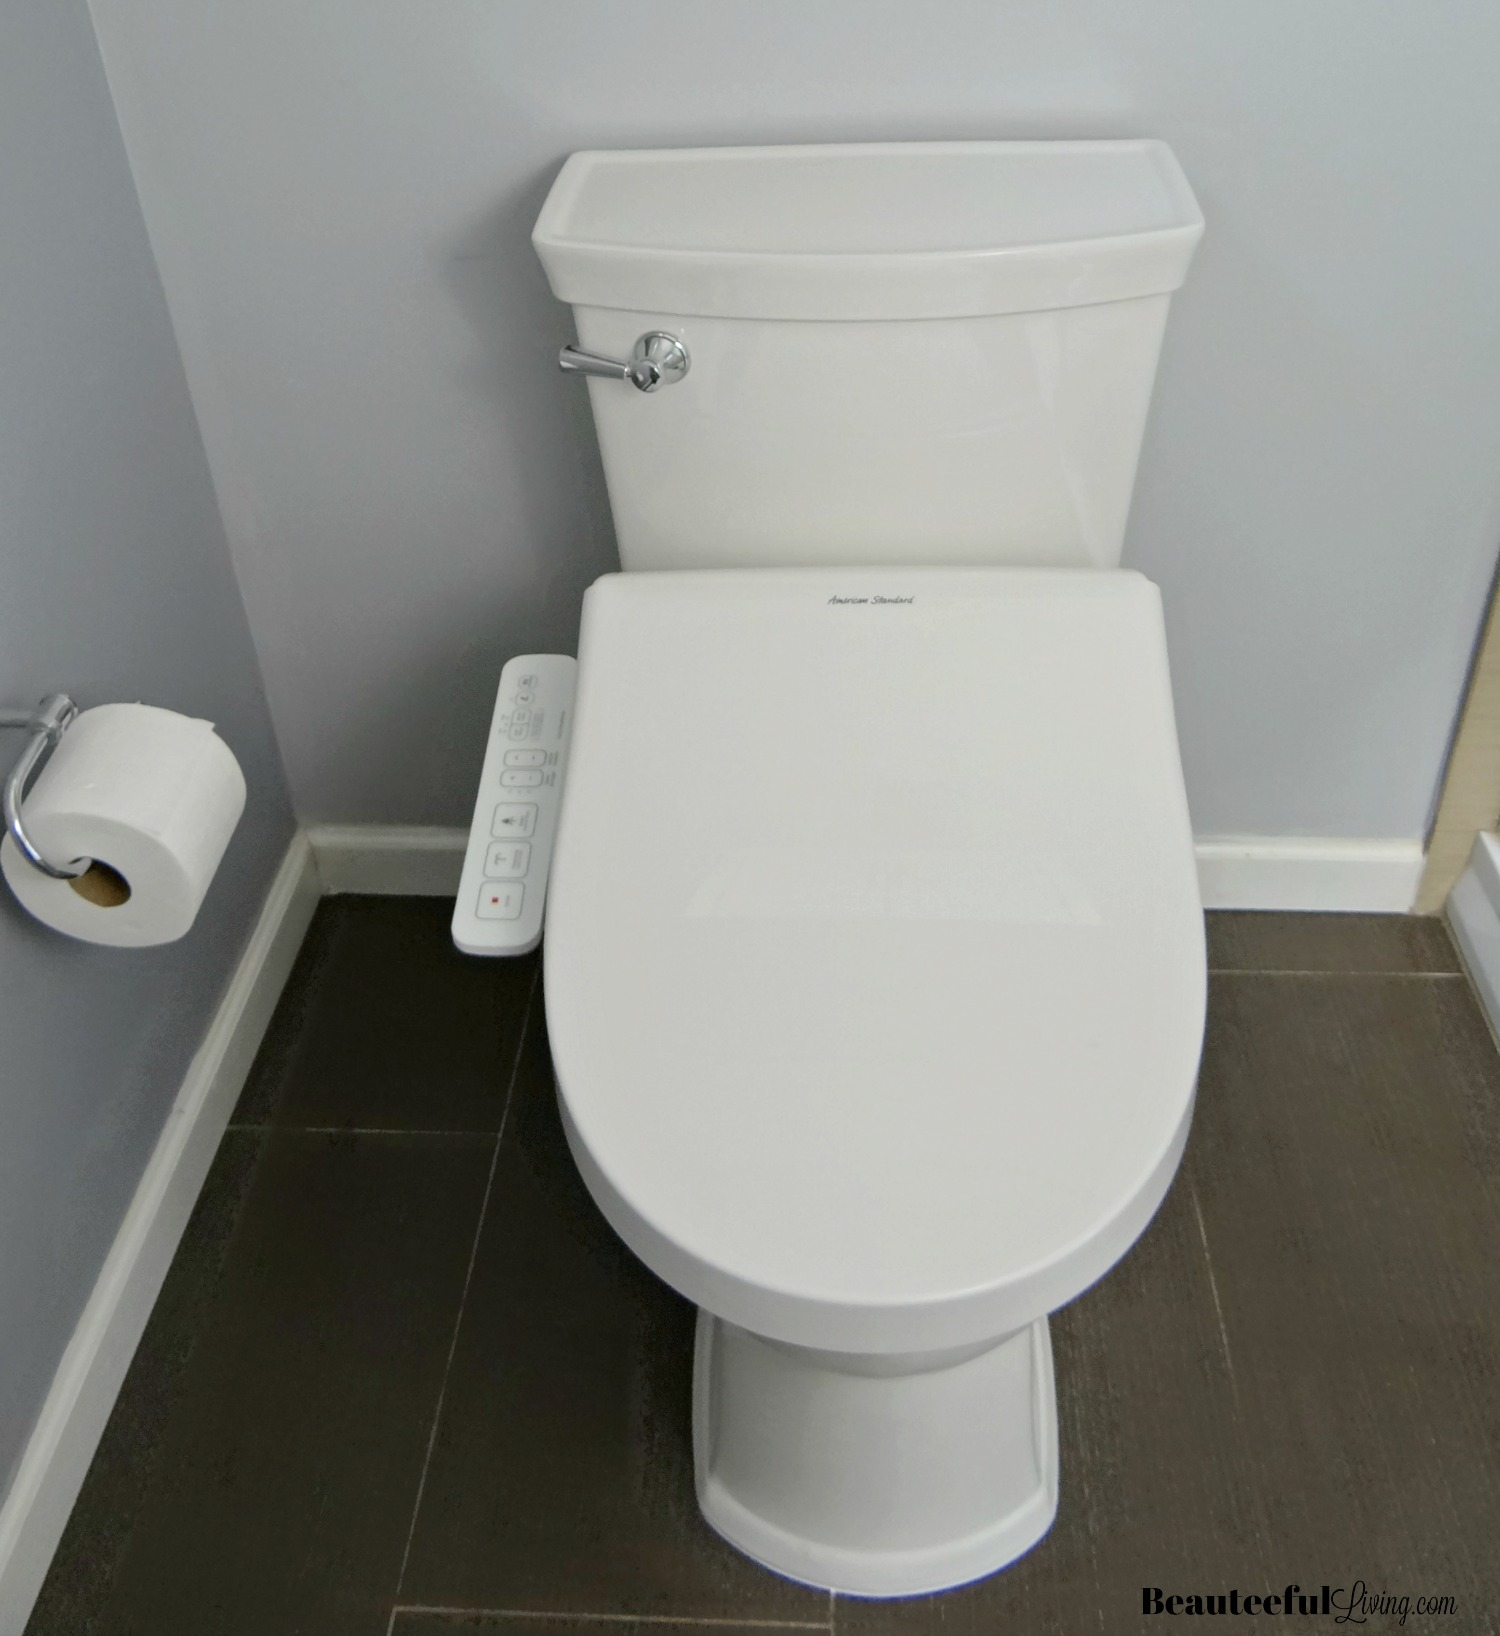 American Standards new VorMax toilets use a redesigned flushing  system.Click To Enlarge